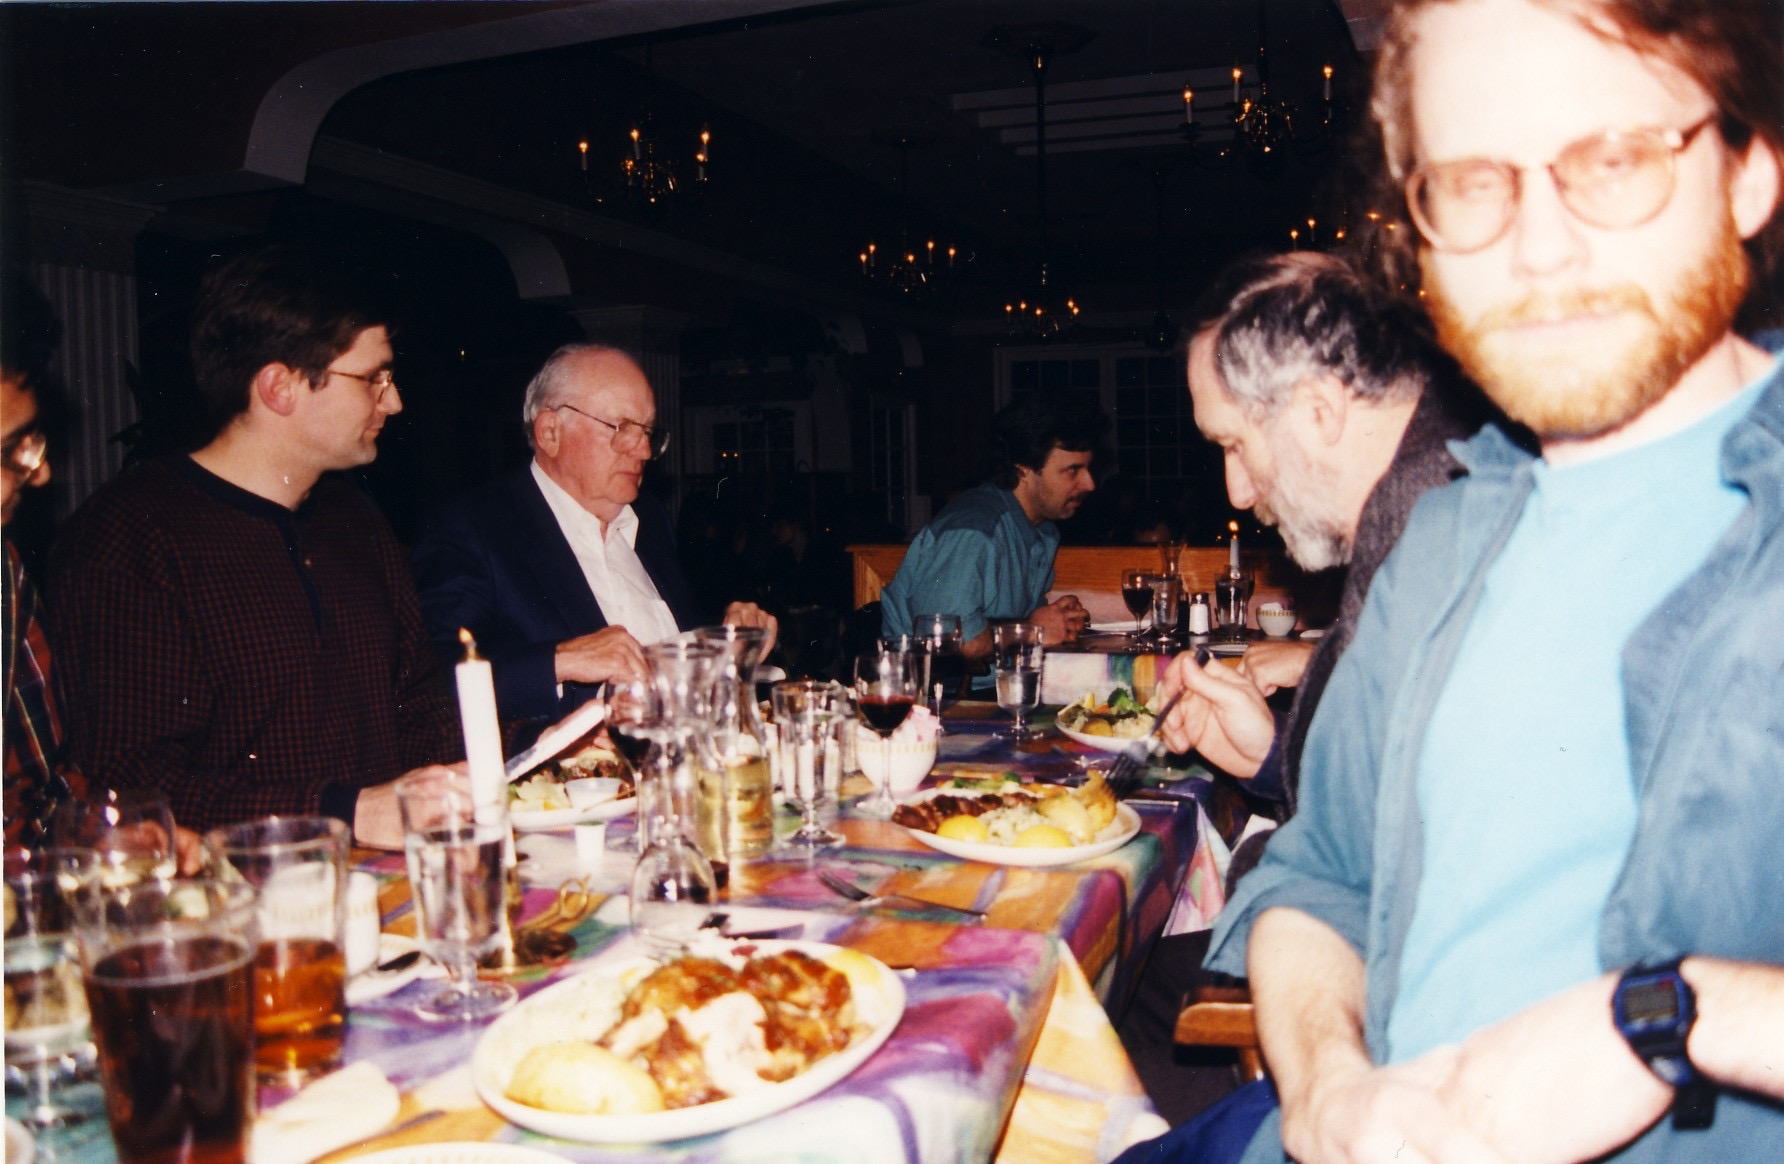 Post-defence party, with Thorsten, my dad, Ron Hatch, and others. That's me impersonating Salman Rushdie.